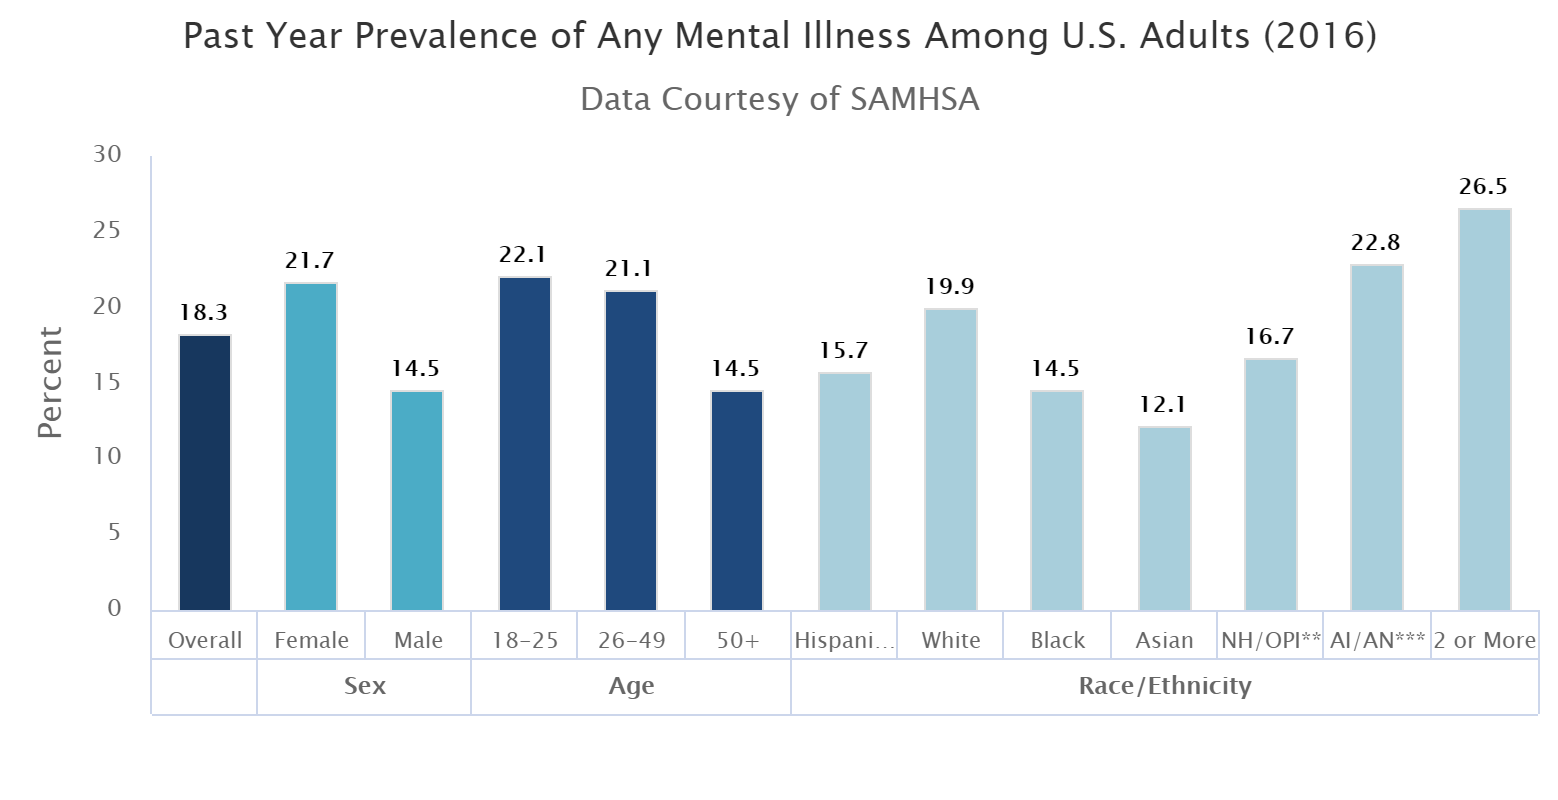 mental disorders affects 44.7 million adults in 2016.png